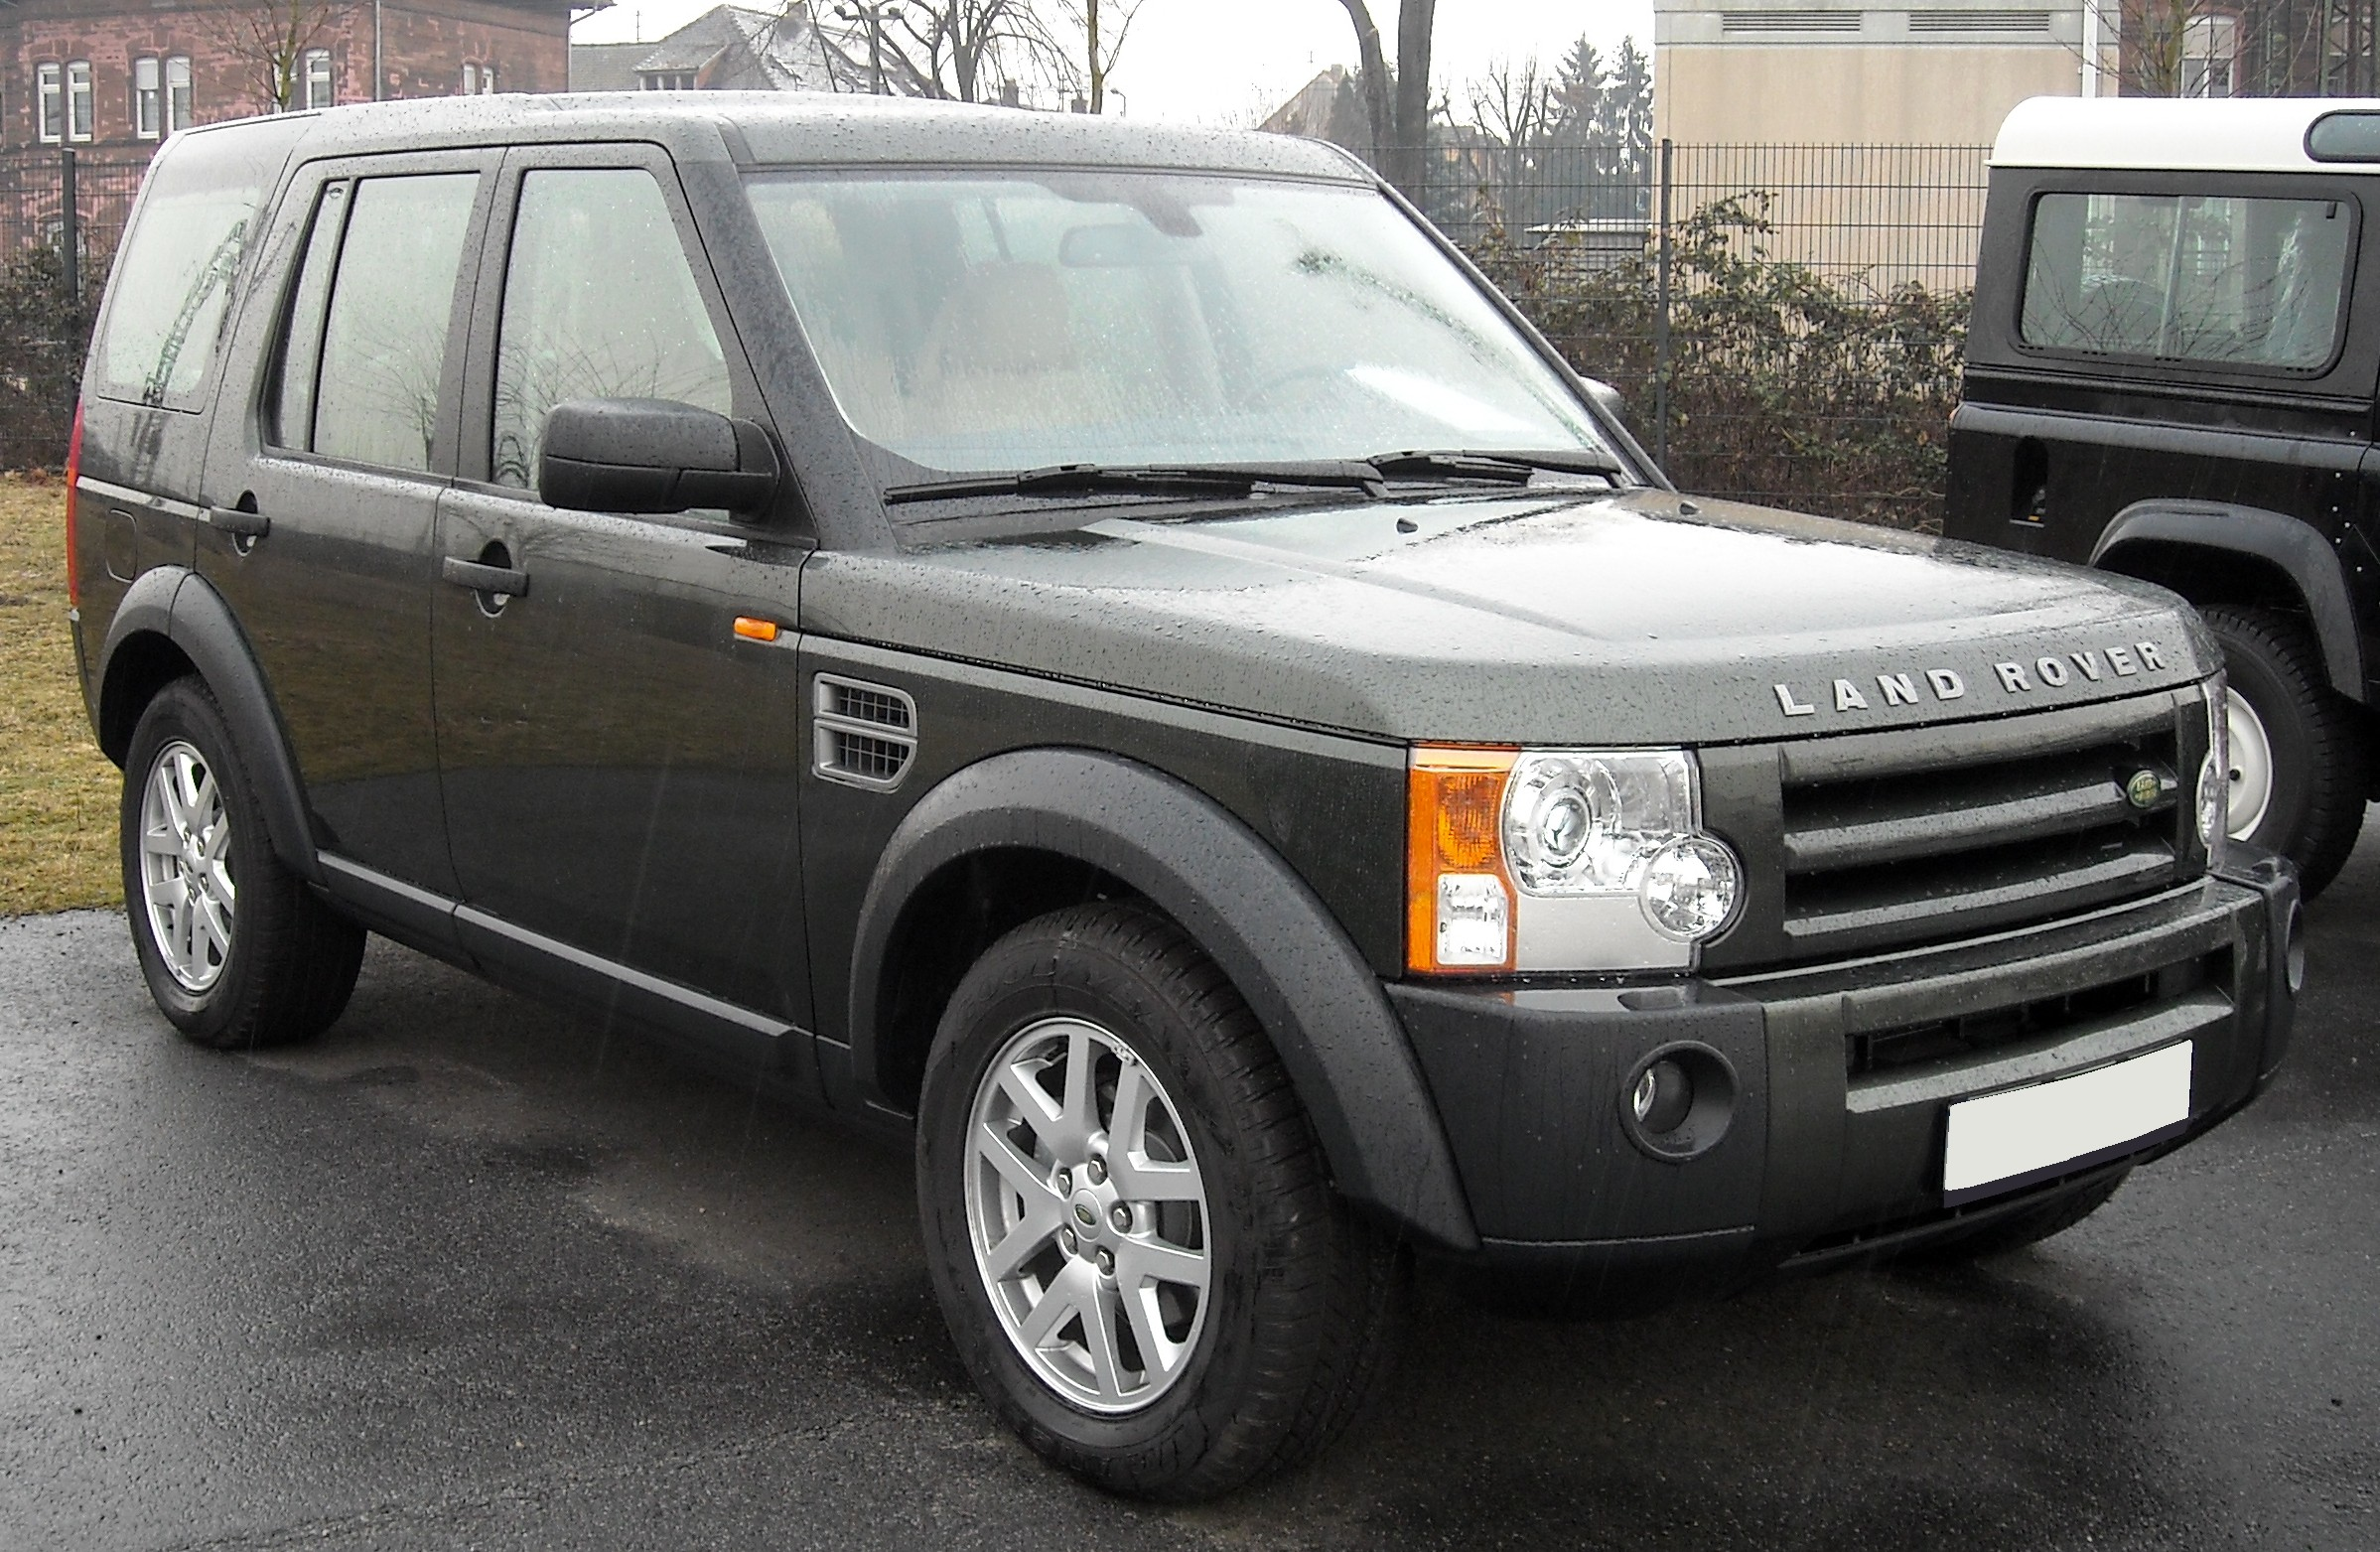 file land rover discovery 3 front wikipedia. Black Bedroom Furniture Sets. Home Design Ideas